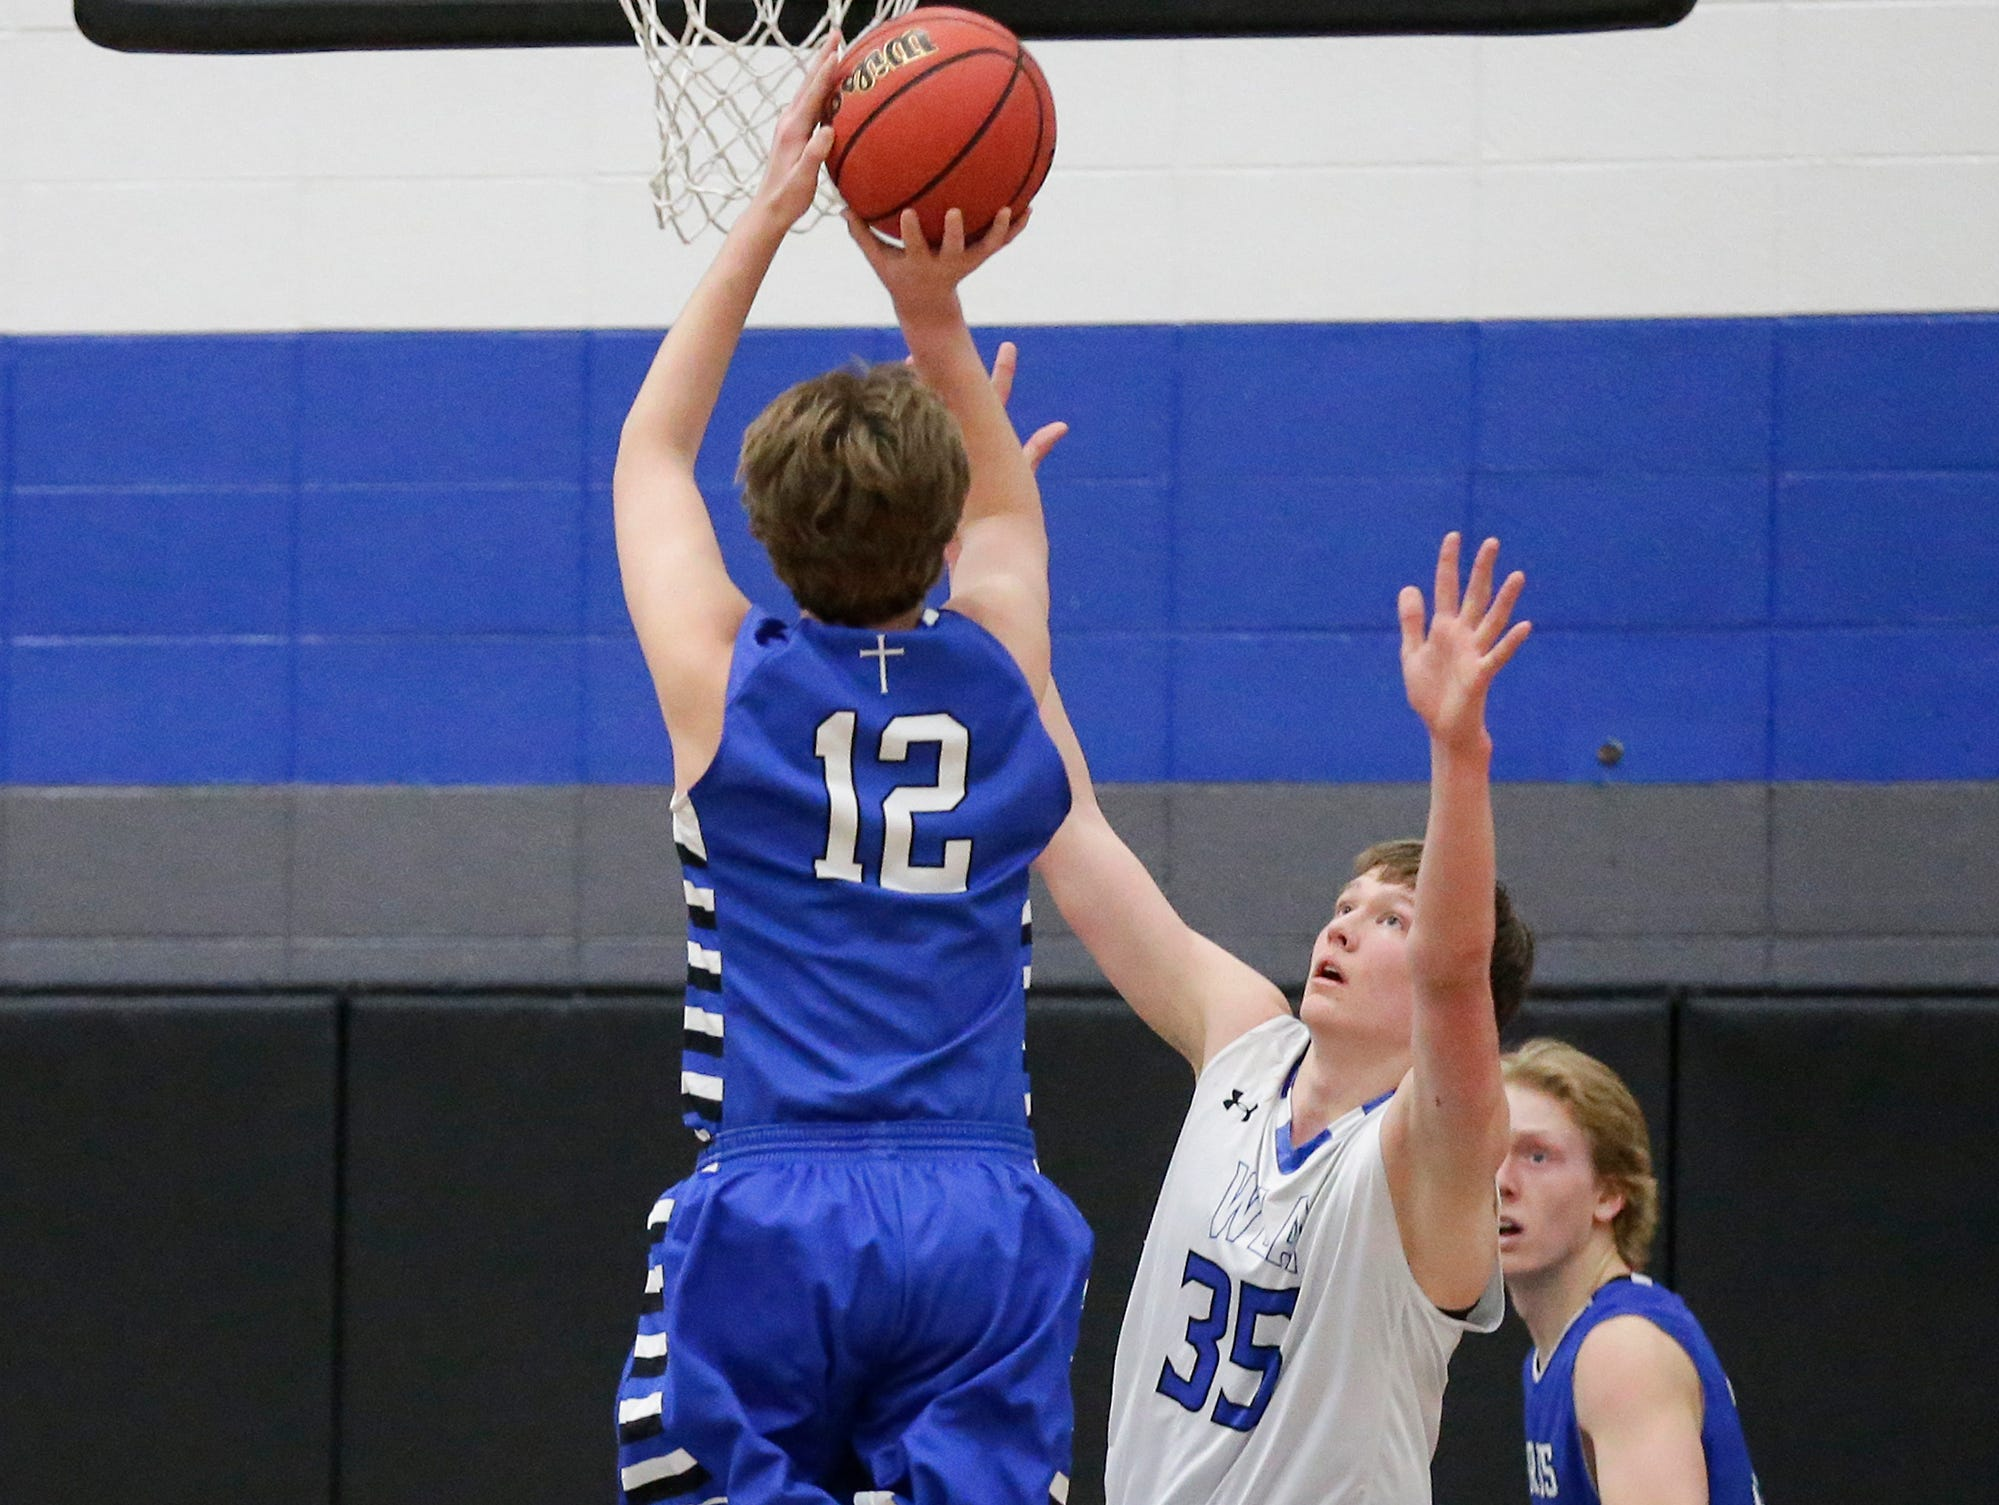 St Mary's Springs Academy boys basketball's Aiden Ottery (12) attempts a basket over Winnebago Lutheran Academy's Gabe Pruss (35) during their game Thursday, February 21, 2019 in Fond du Lac, Wisconsin. Winnebago Lutheran Academy won the game 95-86. Doug Raflik/USA TODAY NETWORK-Wisconsin